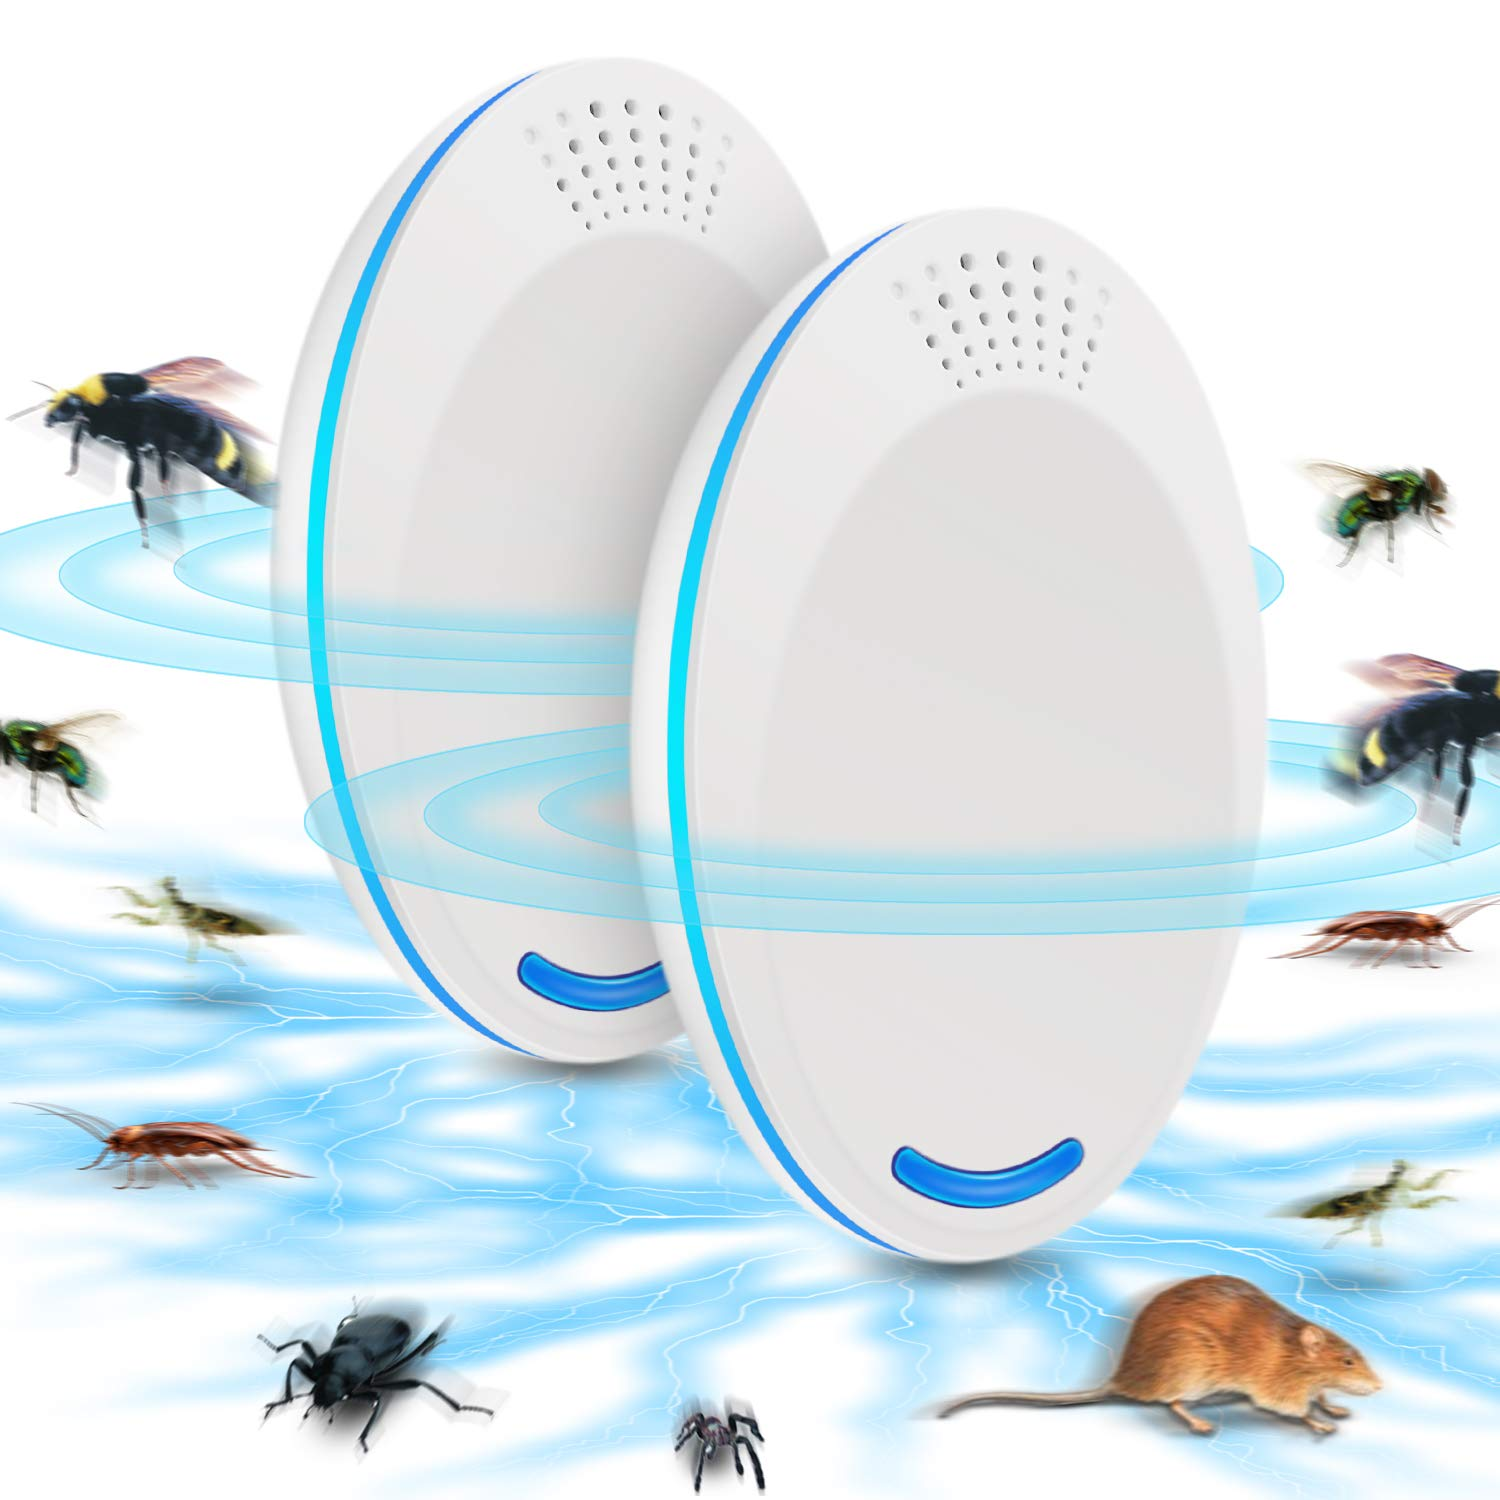 Ultrasonic Pest Repeller-Electronic Mouse Repellent Plug in Pest Control-Pest Repellent for Mice,Rat,Bug,Spider,Roach,Ant,Mosquito,Fly-2PCS White